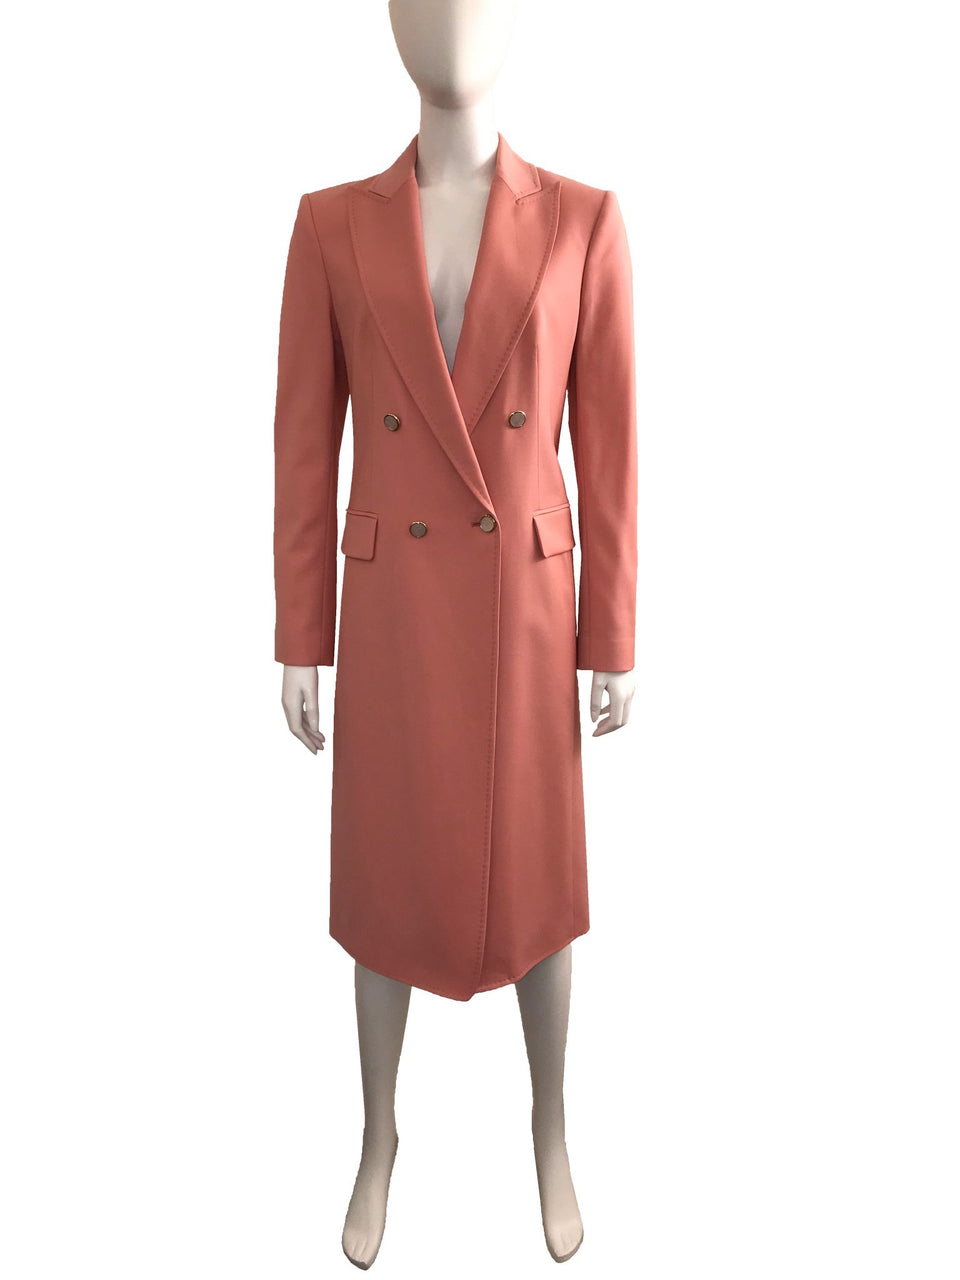 Temperley Pink Double Breasted 3/4 Jacket Dress